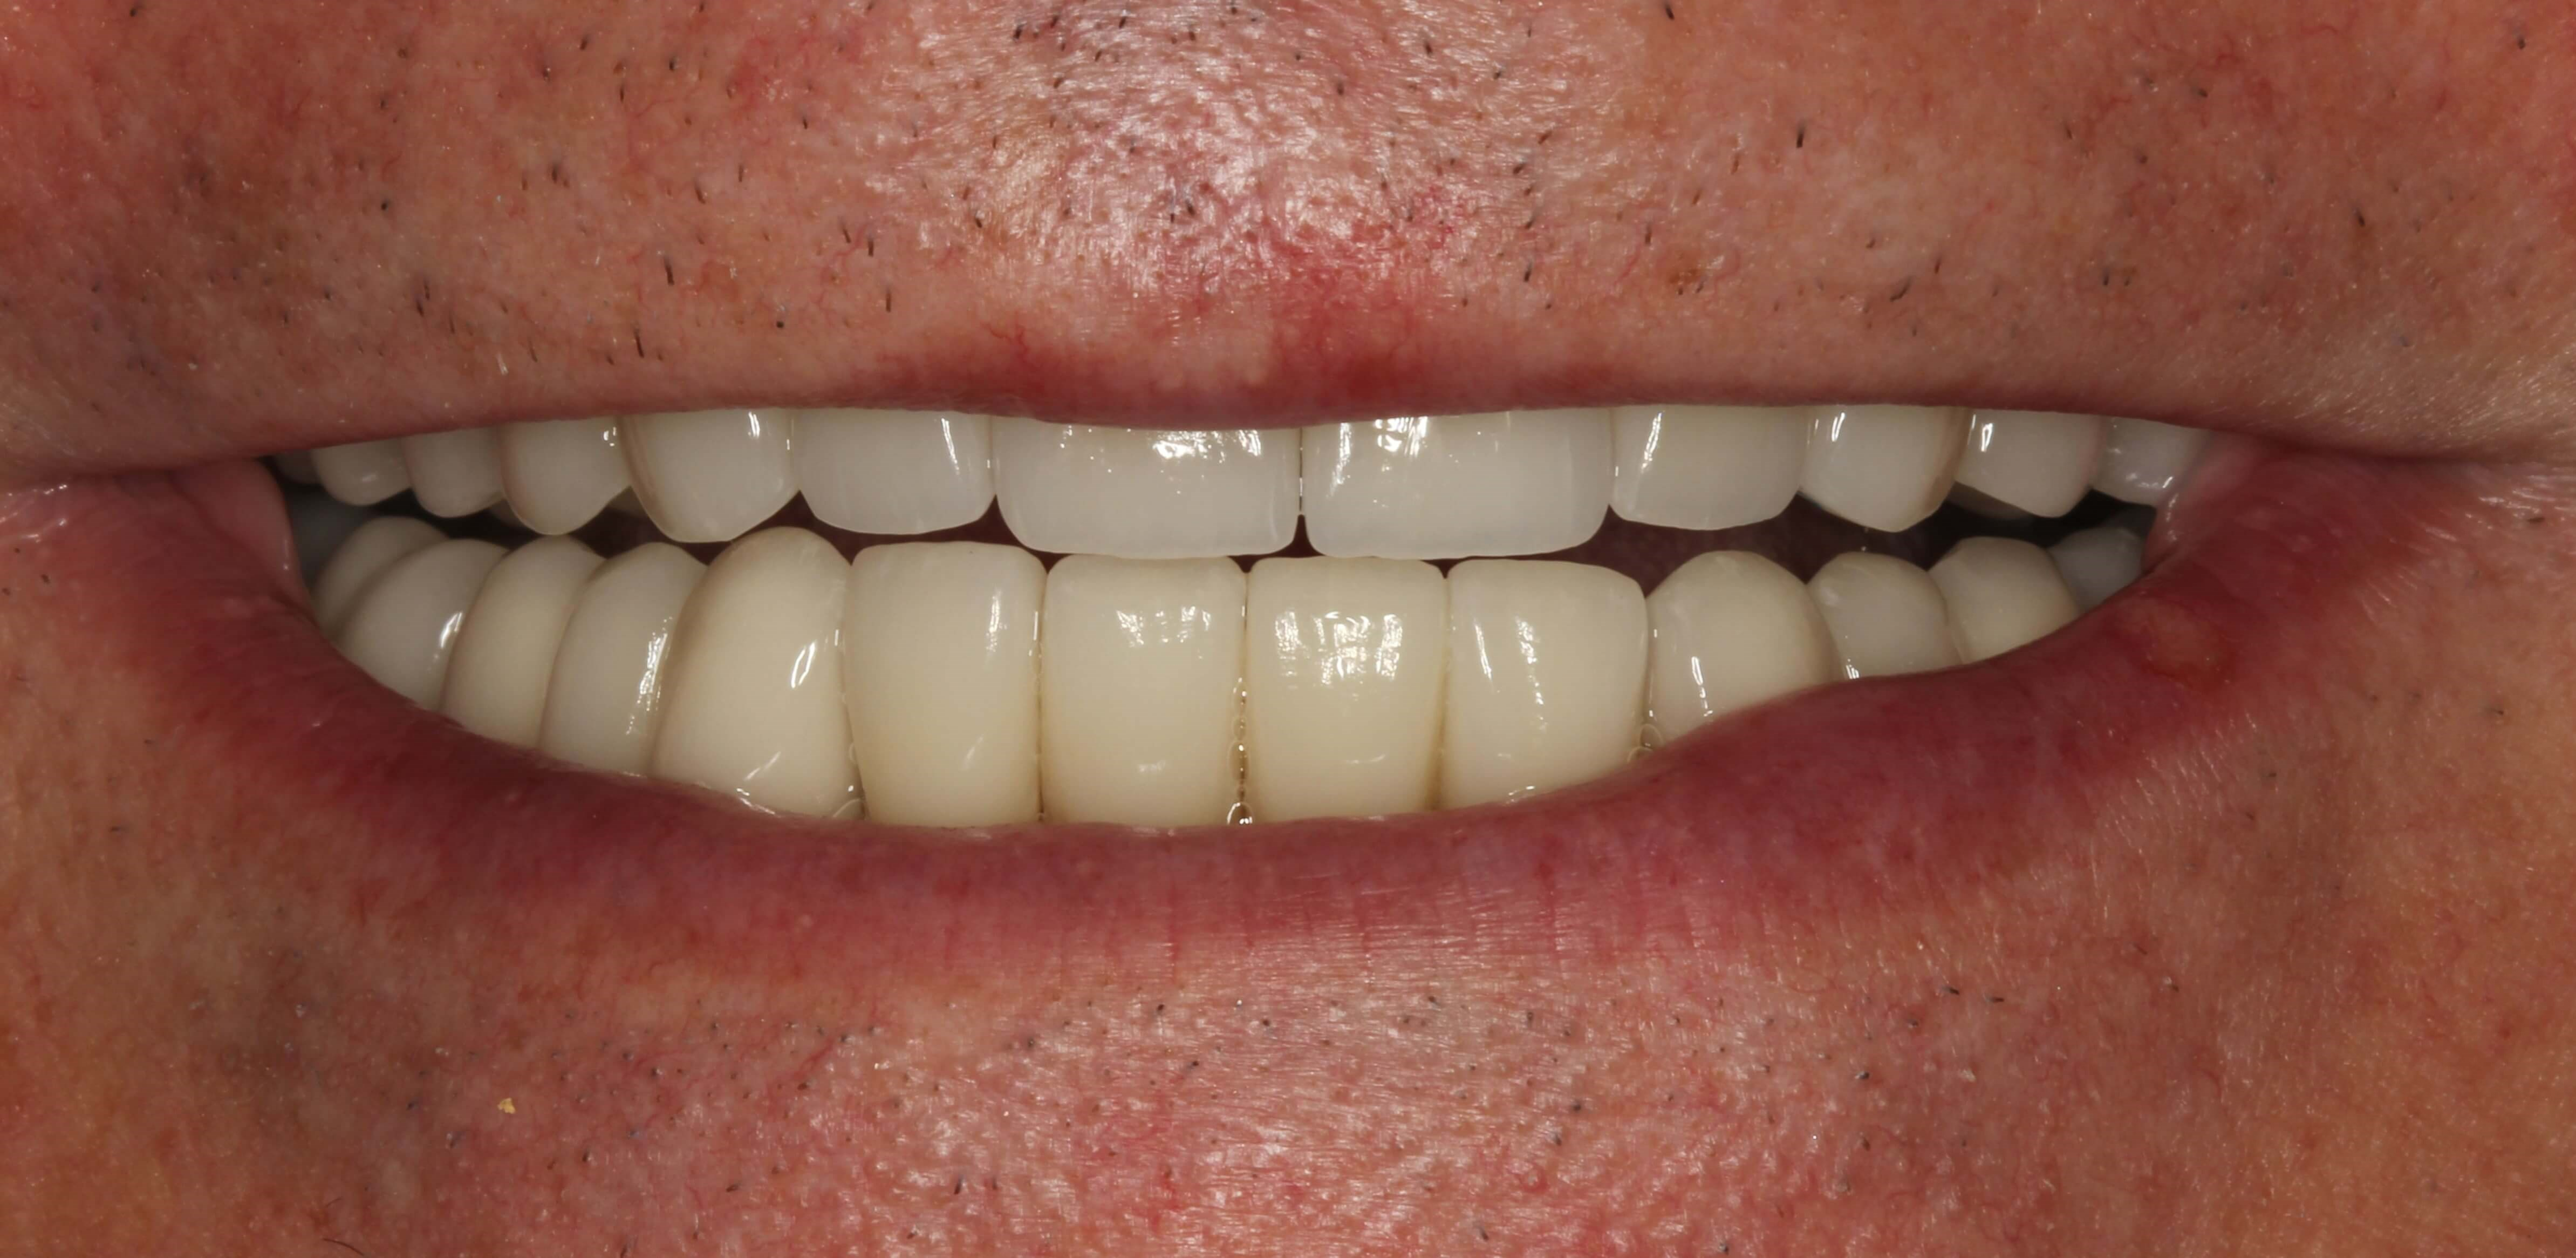 Full-Mouth Makeover After